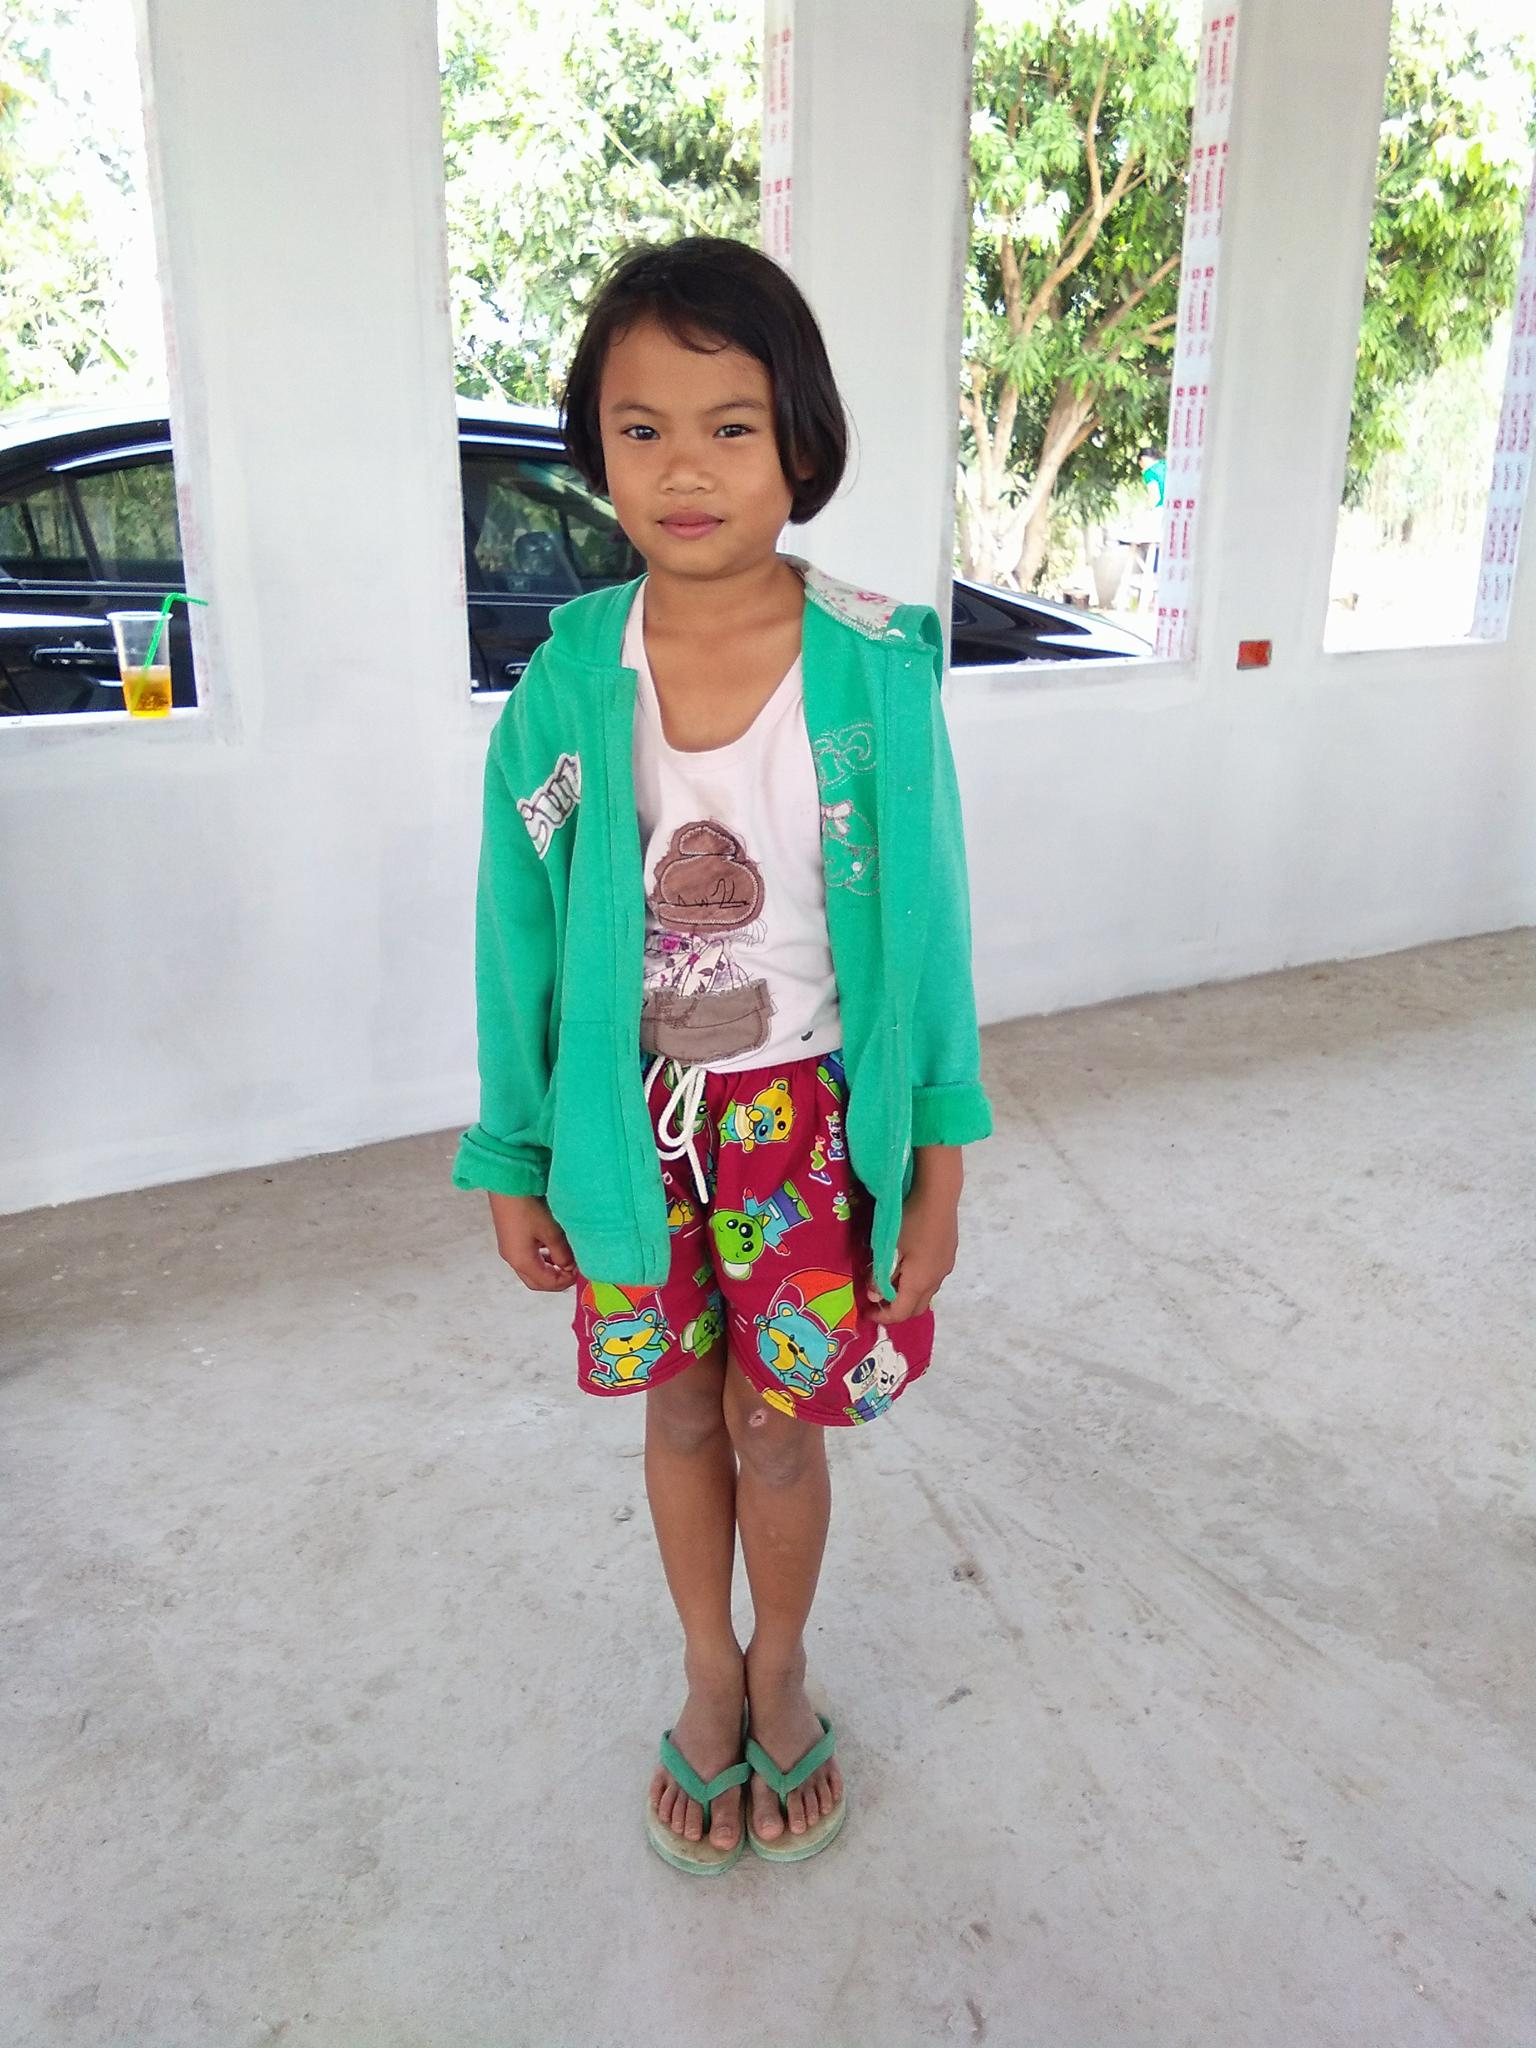 Sasiton Janbowla (11 years old, girl)